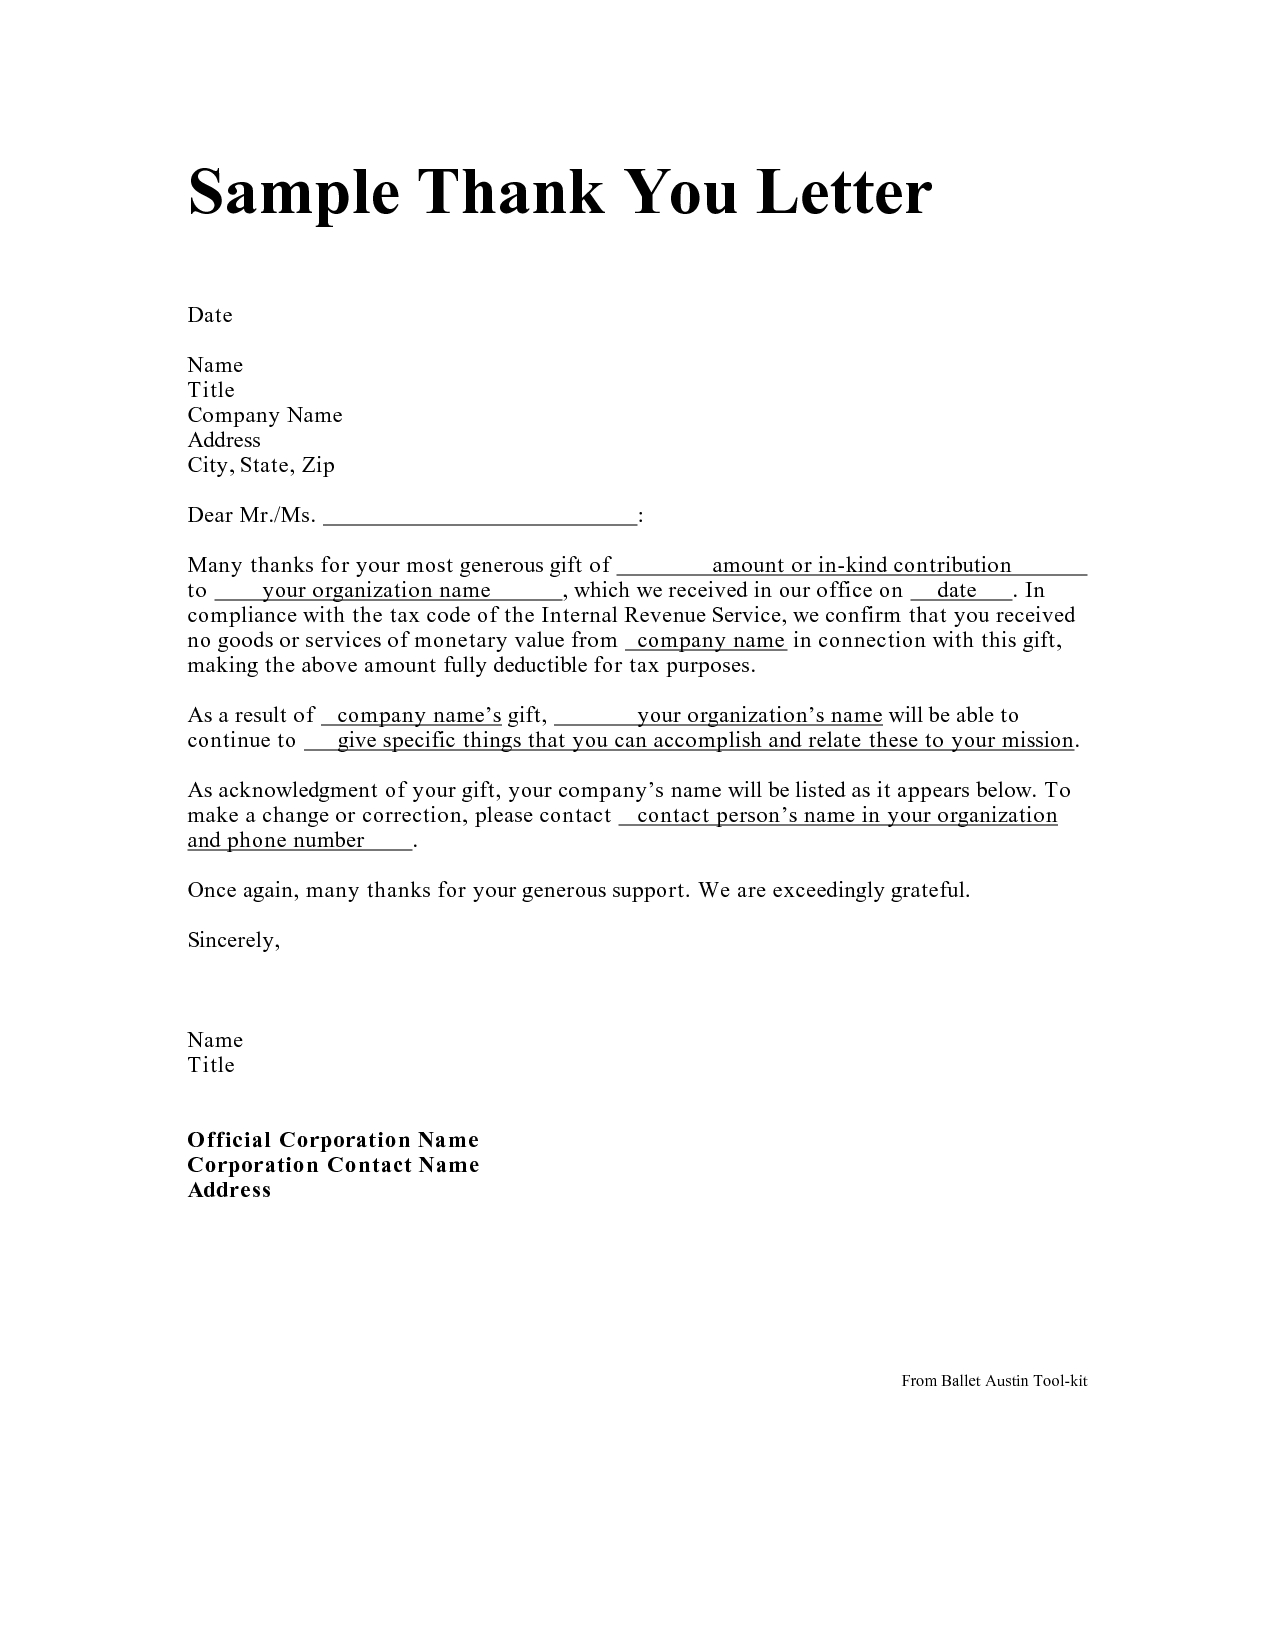 Holiday Letter Template - Personal Thank You Letter Personal Thank You Letter Samples